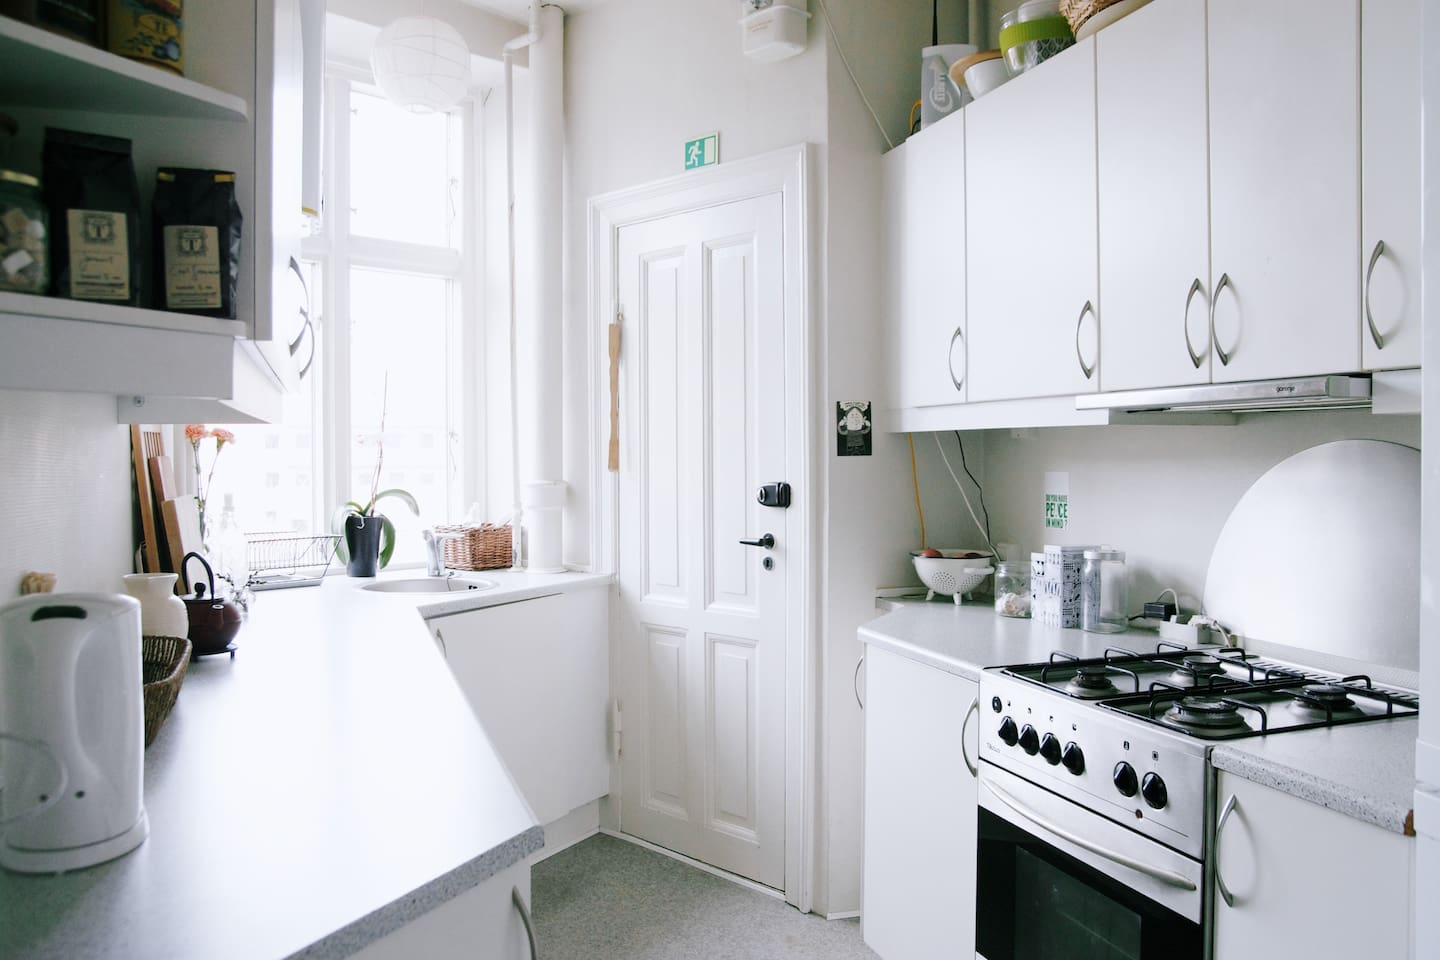 Our nice and bright kitchen with acces to the small shared garden.